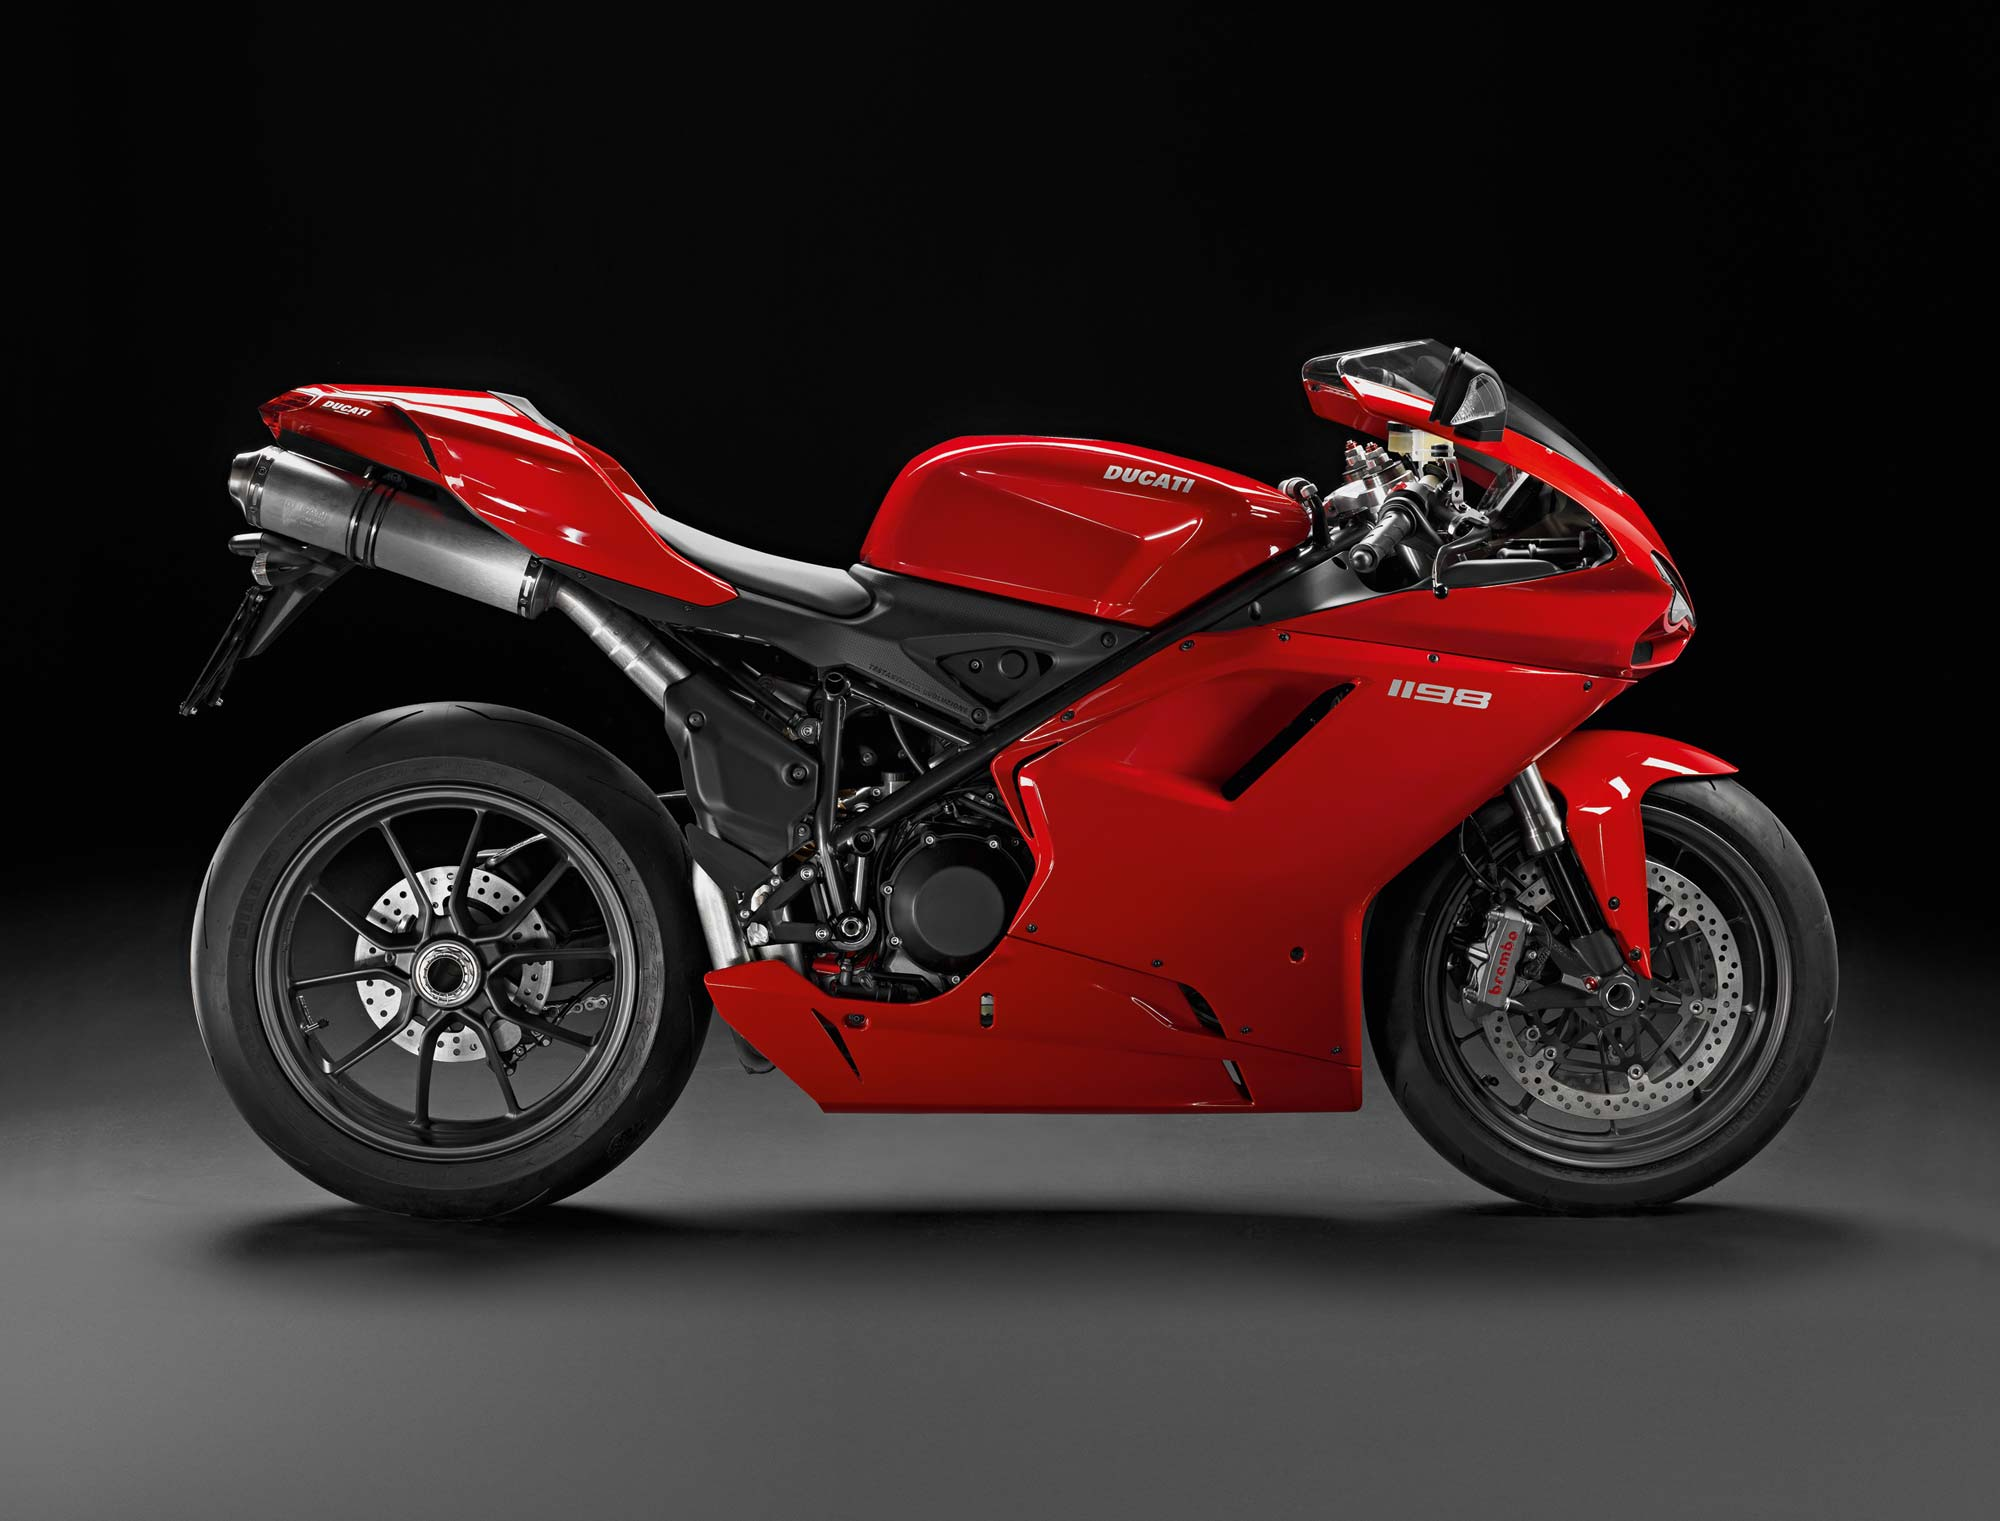 1198 >> 2011 Ducati Superbike 1198 Gets Free Traction Control Data